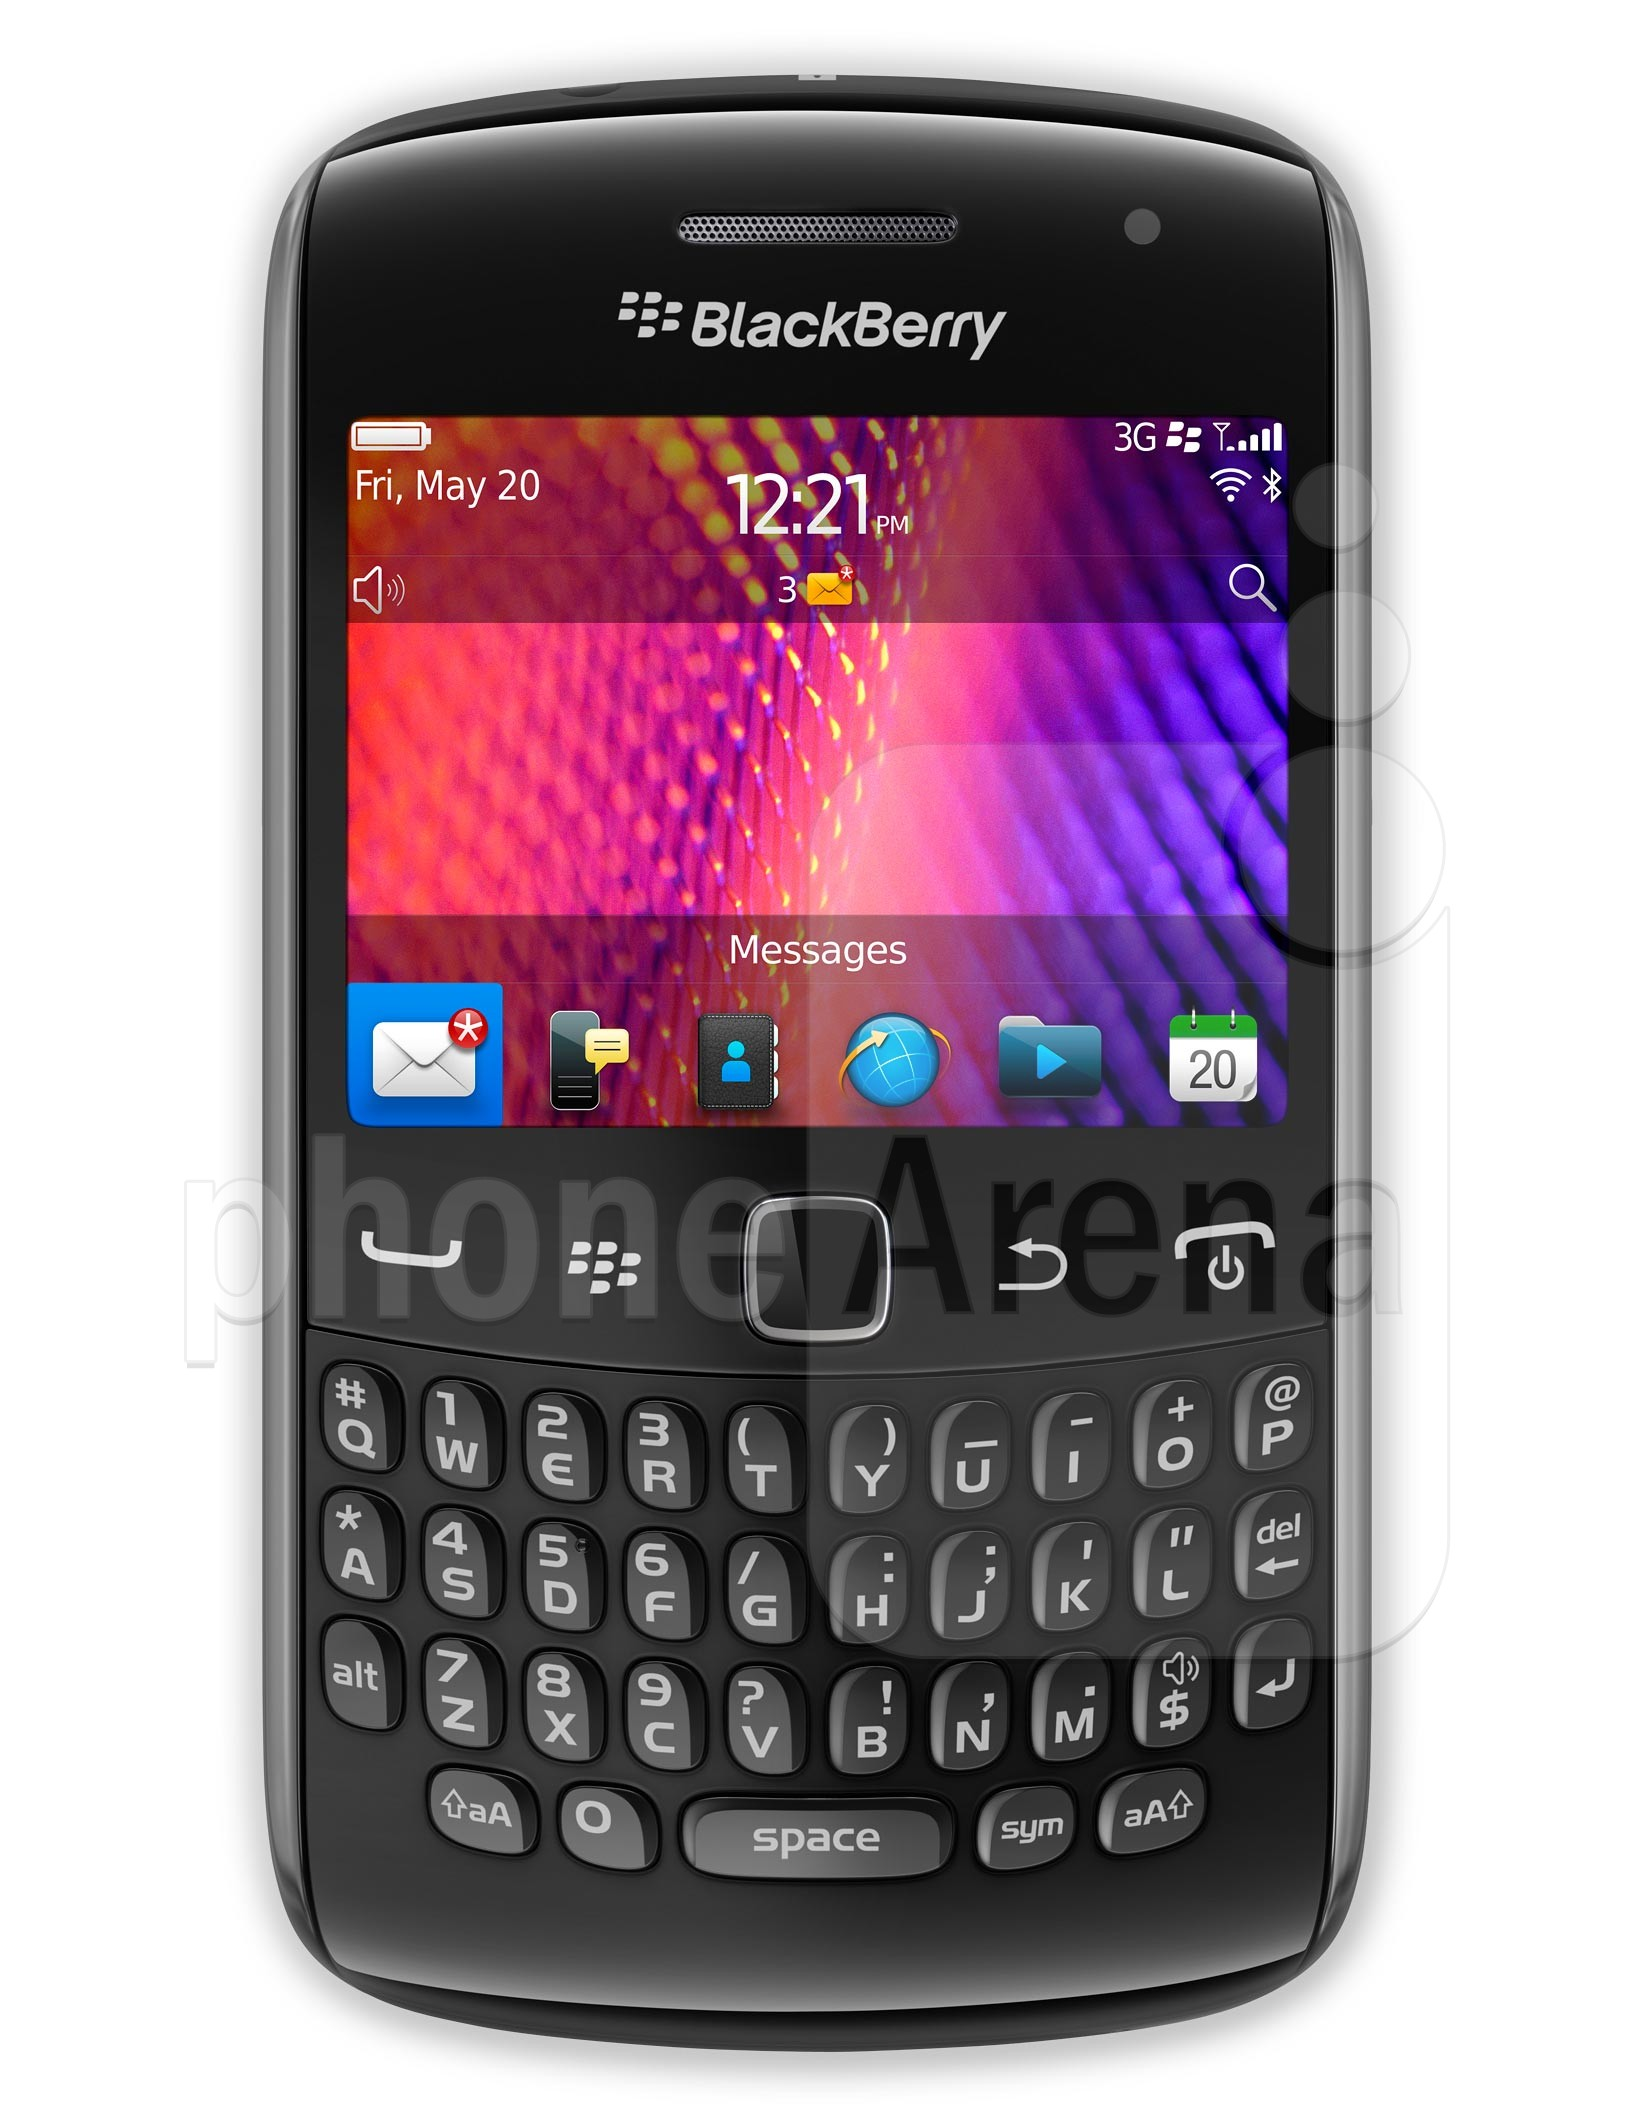 BlackBerry Curve 9350 specs